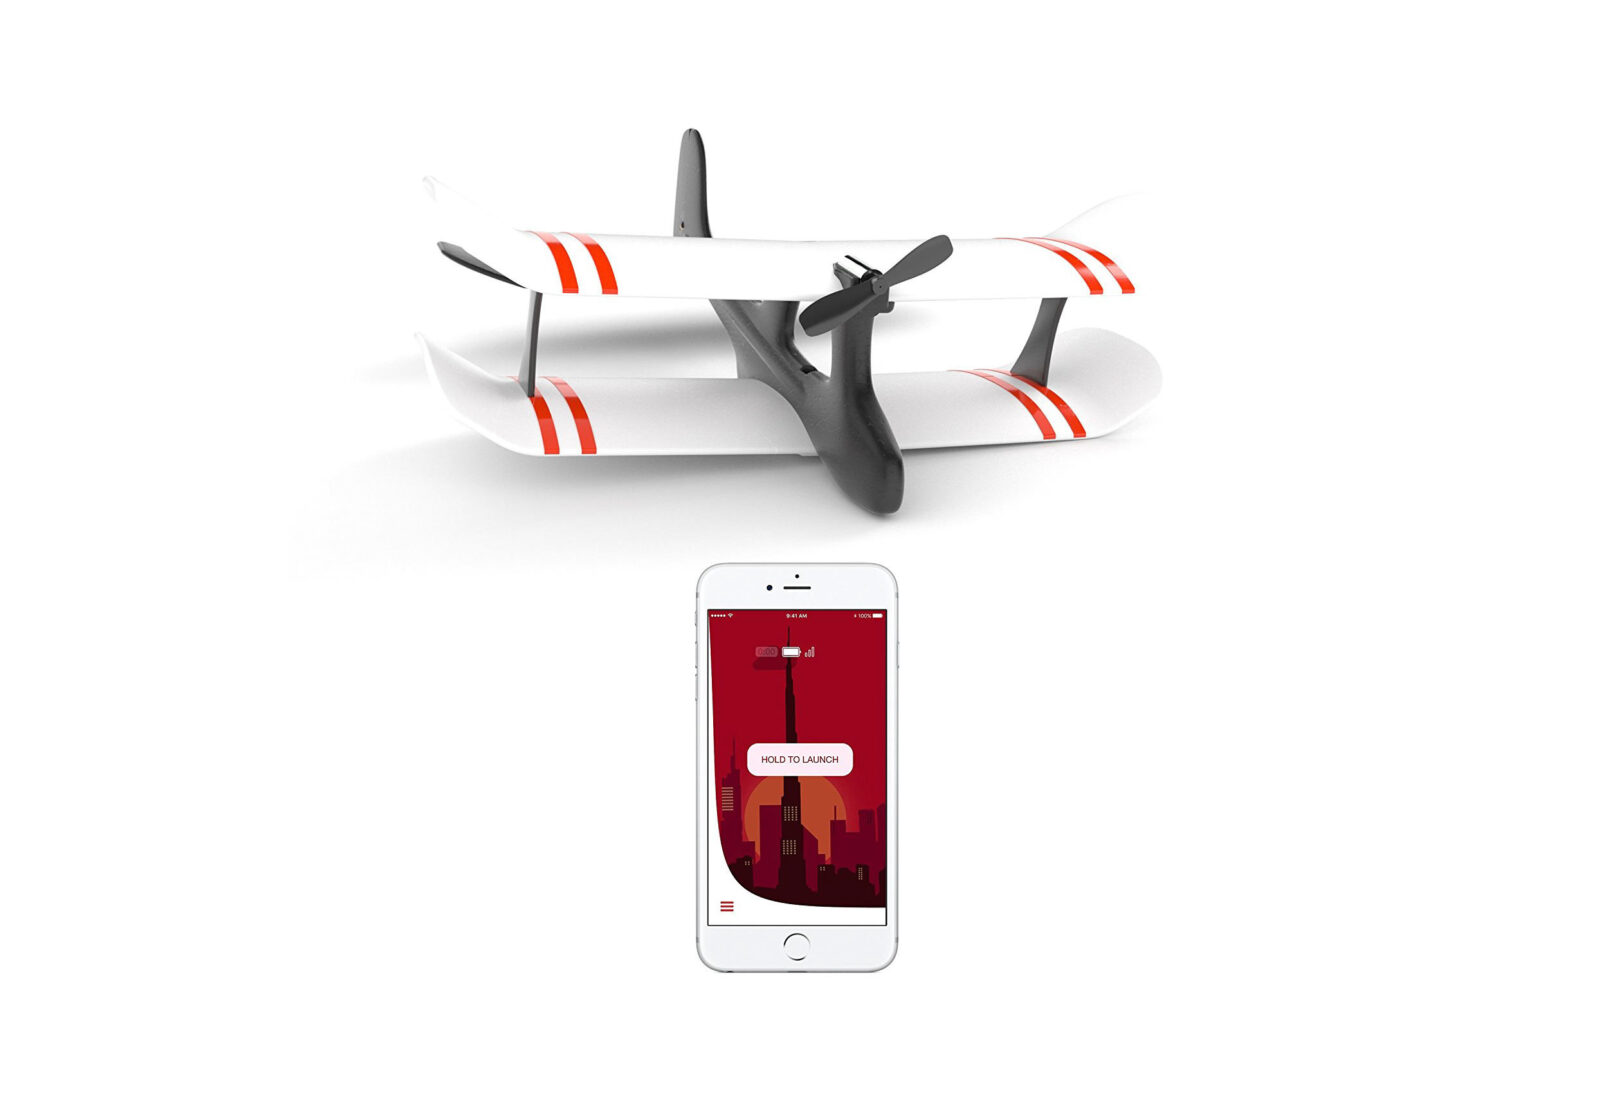 TobyRich Moskito Smartphone App Controlled Airplane 3 1600x1108 - TobyRich Moskito - Smartphone App Controlled Airplane